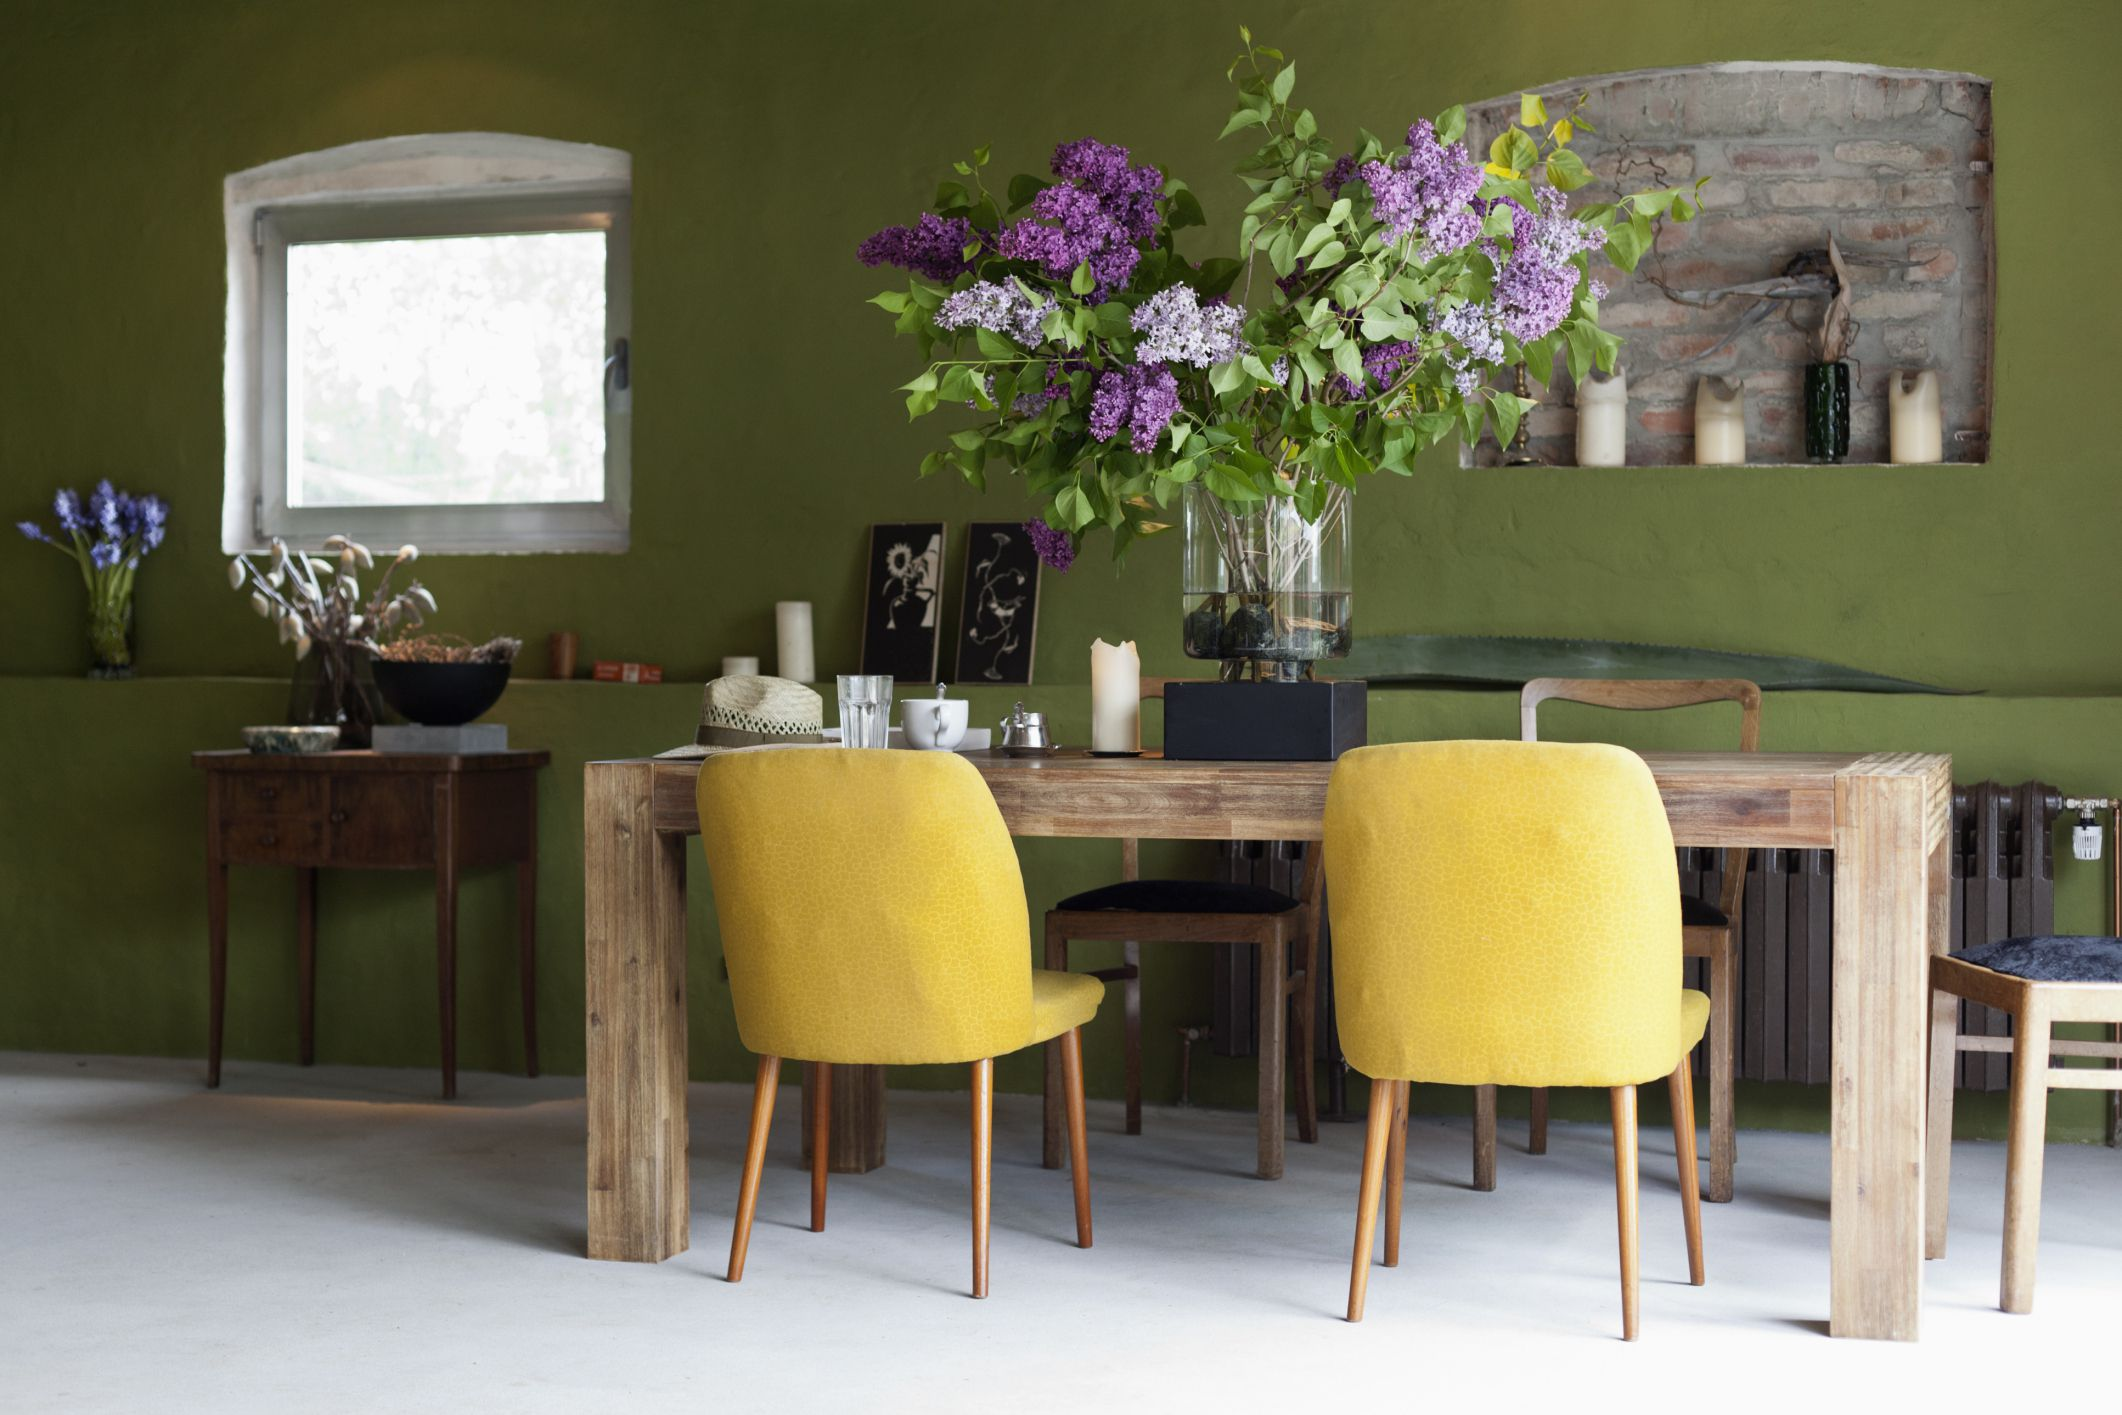 Colors that go well with green and purple - The Top Paint Colors For Mid Century Modern Style